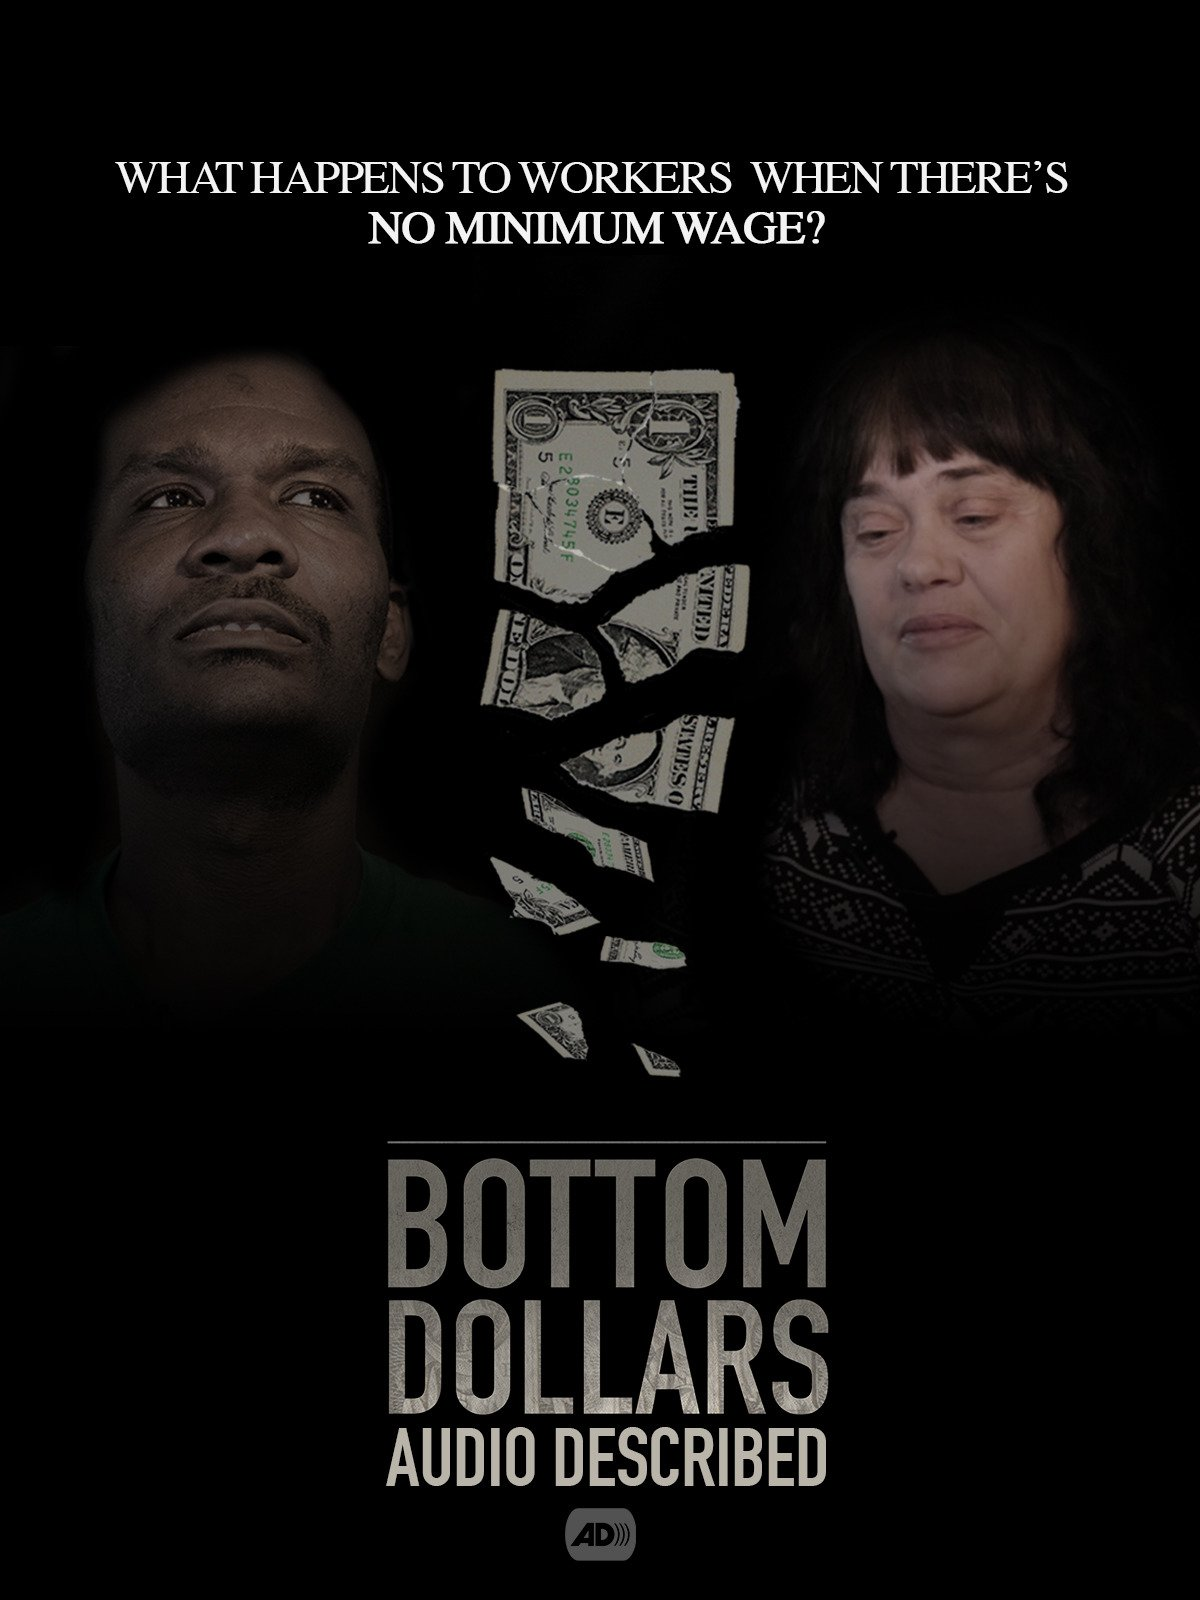 Bottom Dollars Audio Described